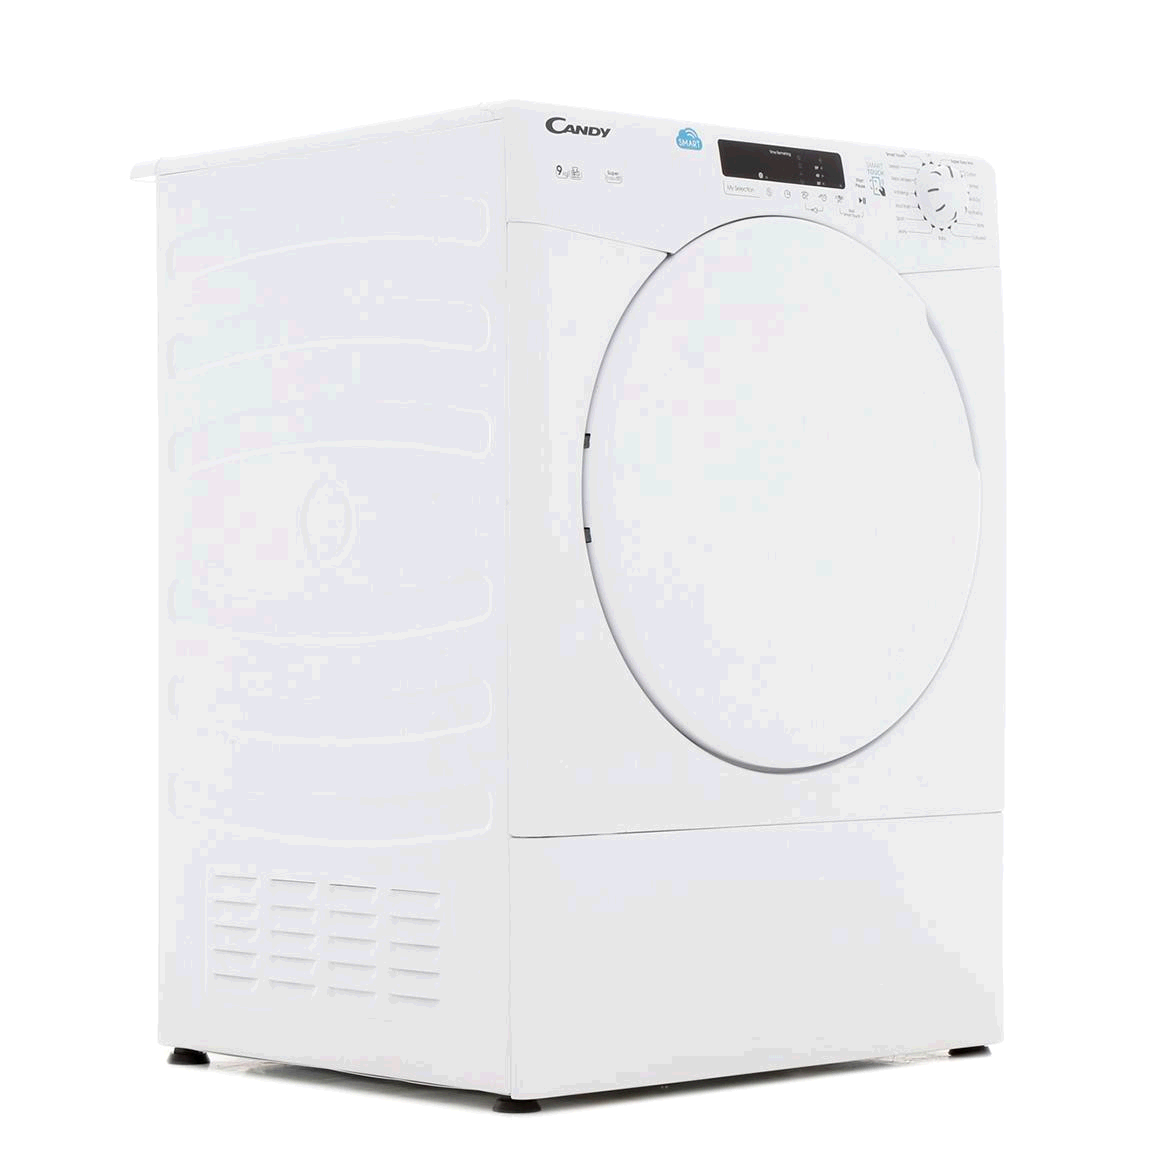 Hoover Candy Tumble Dryer Vented Sensor Dry 9kg  H850 W600 D600 White with White Door